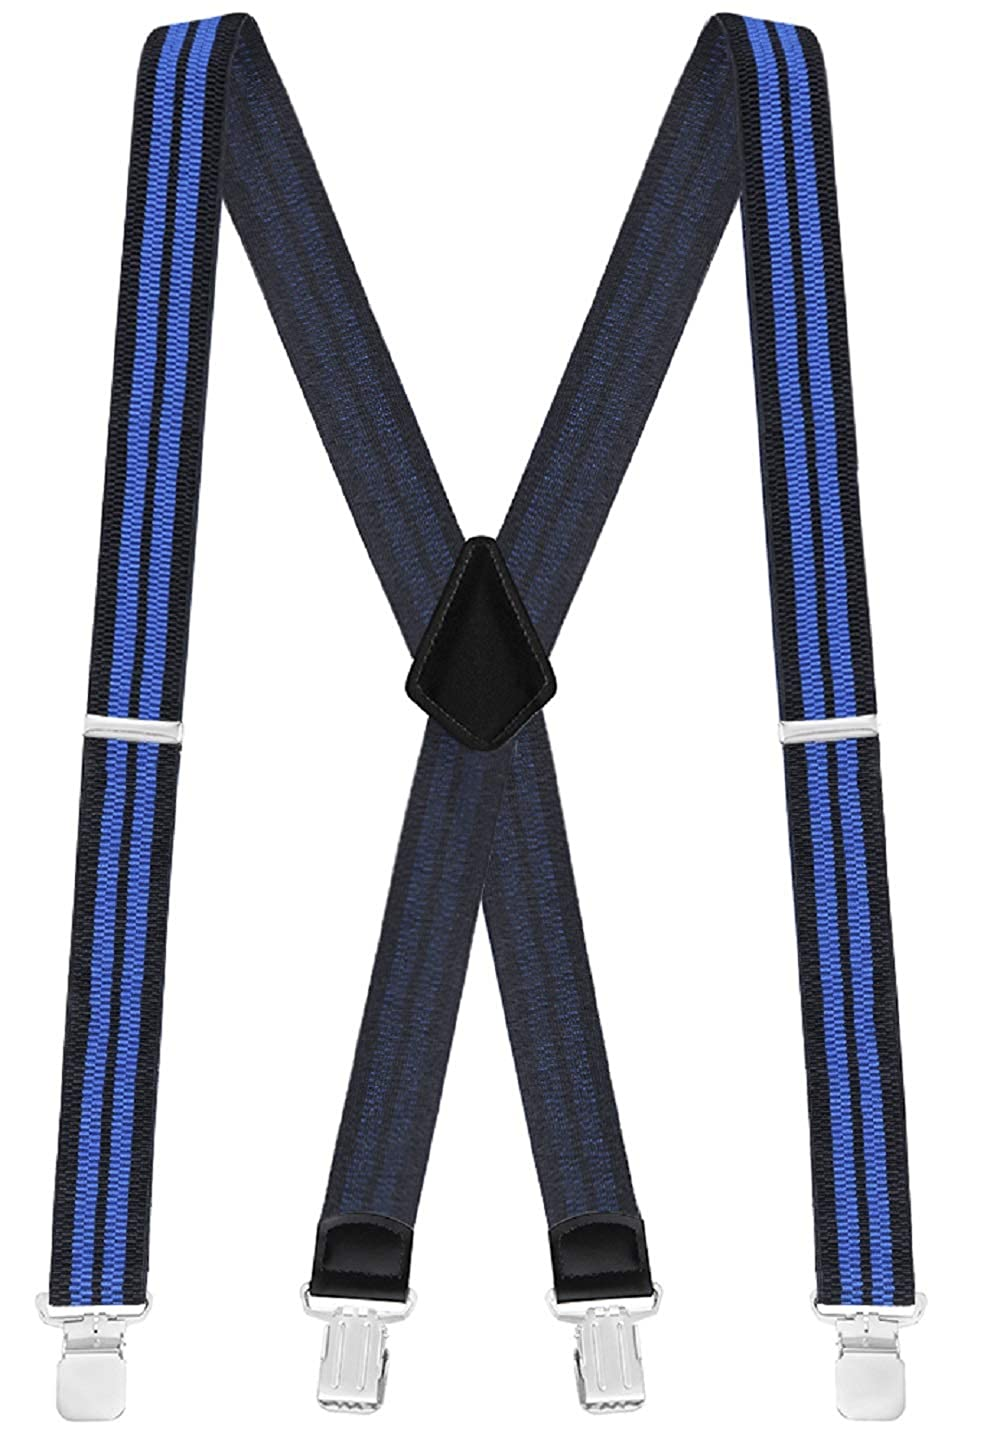 Adjustable and Solid with Metal Clips//One Size Fits All Buyless Fashion Mens Straight Braces Wide X-Back Style 1 /½ Heavy Duty